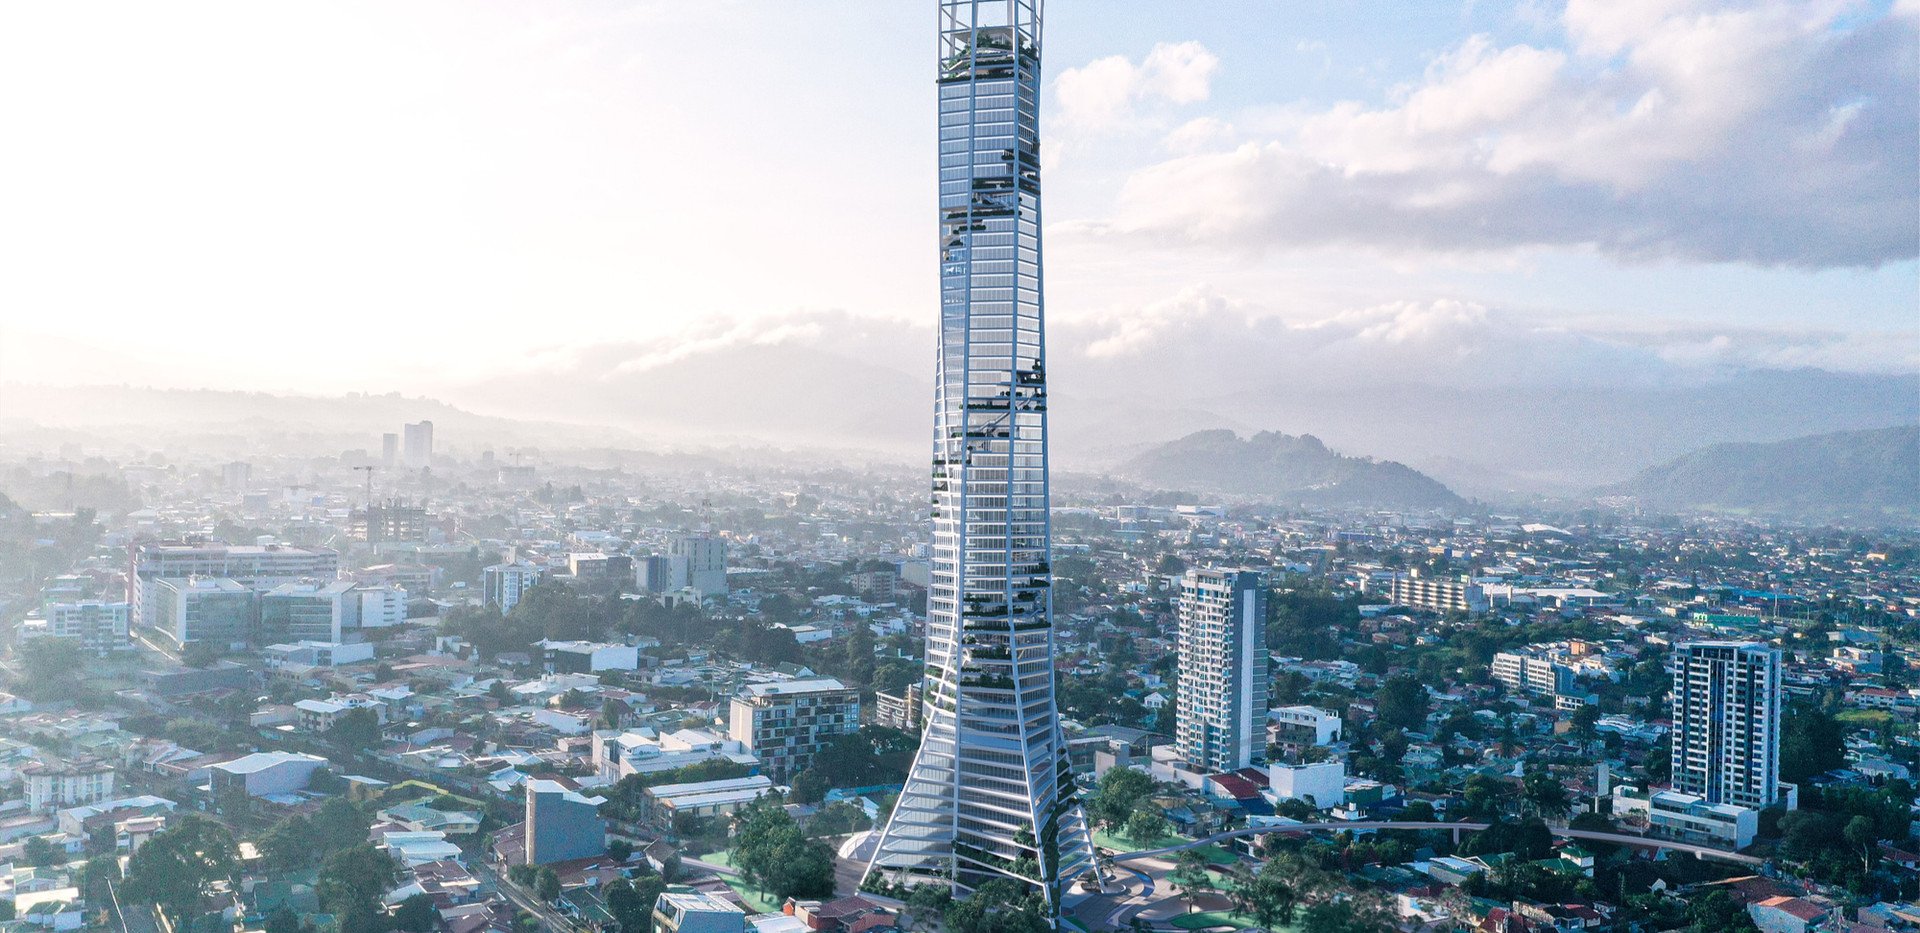 Inverse Project Bicentenial Tower